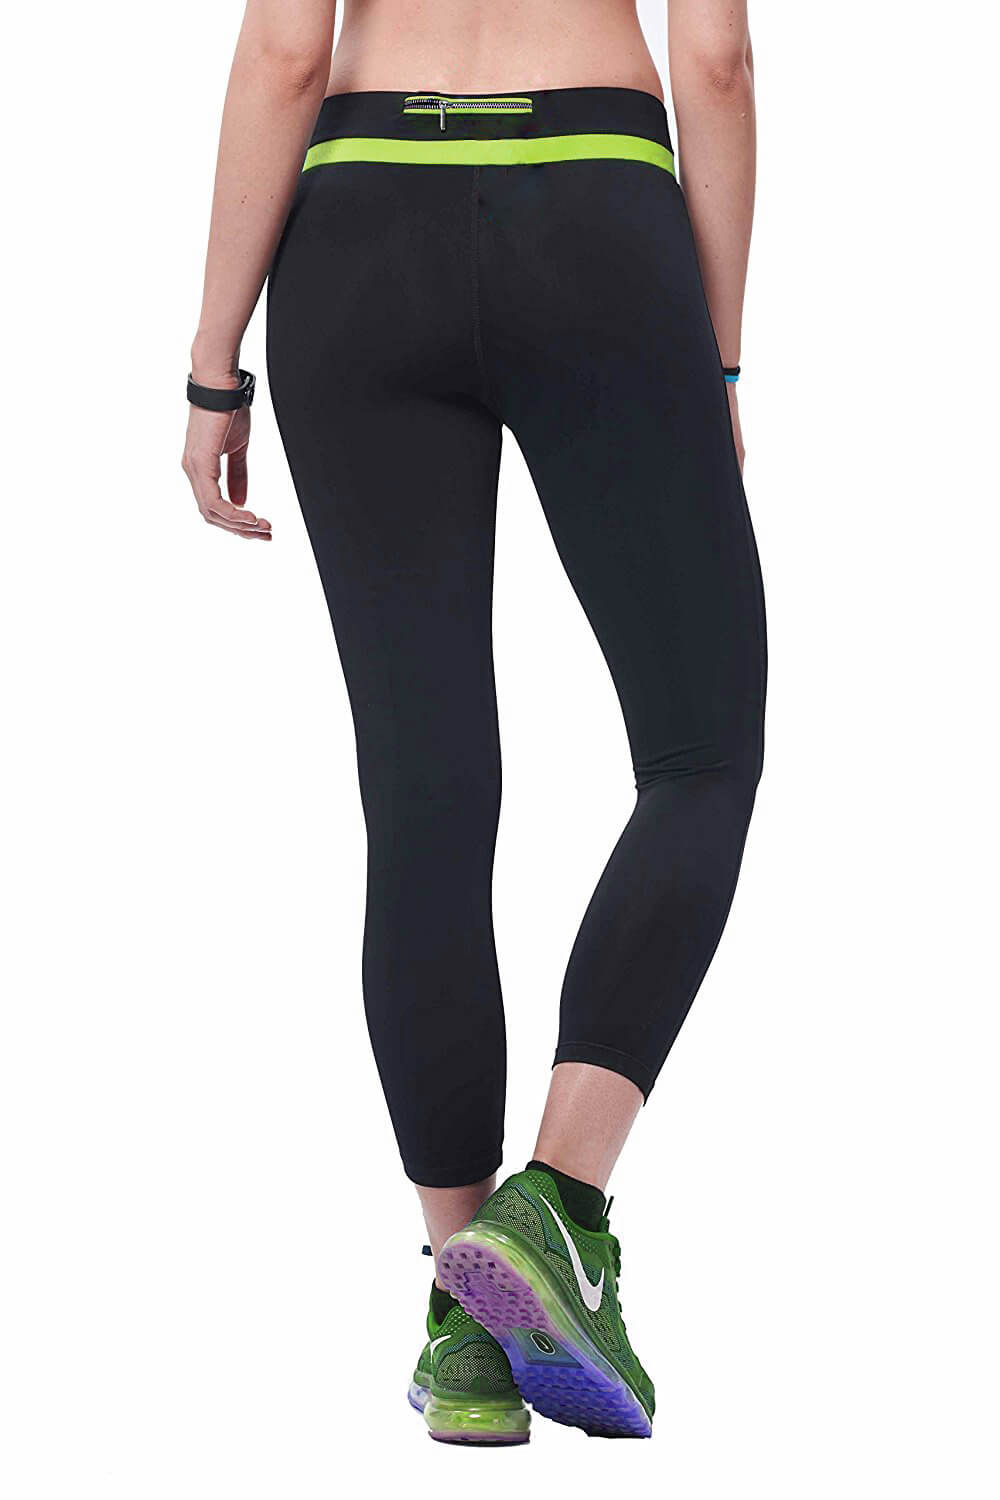 PROXIMA Sports Leggings